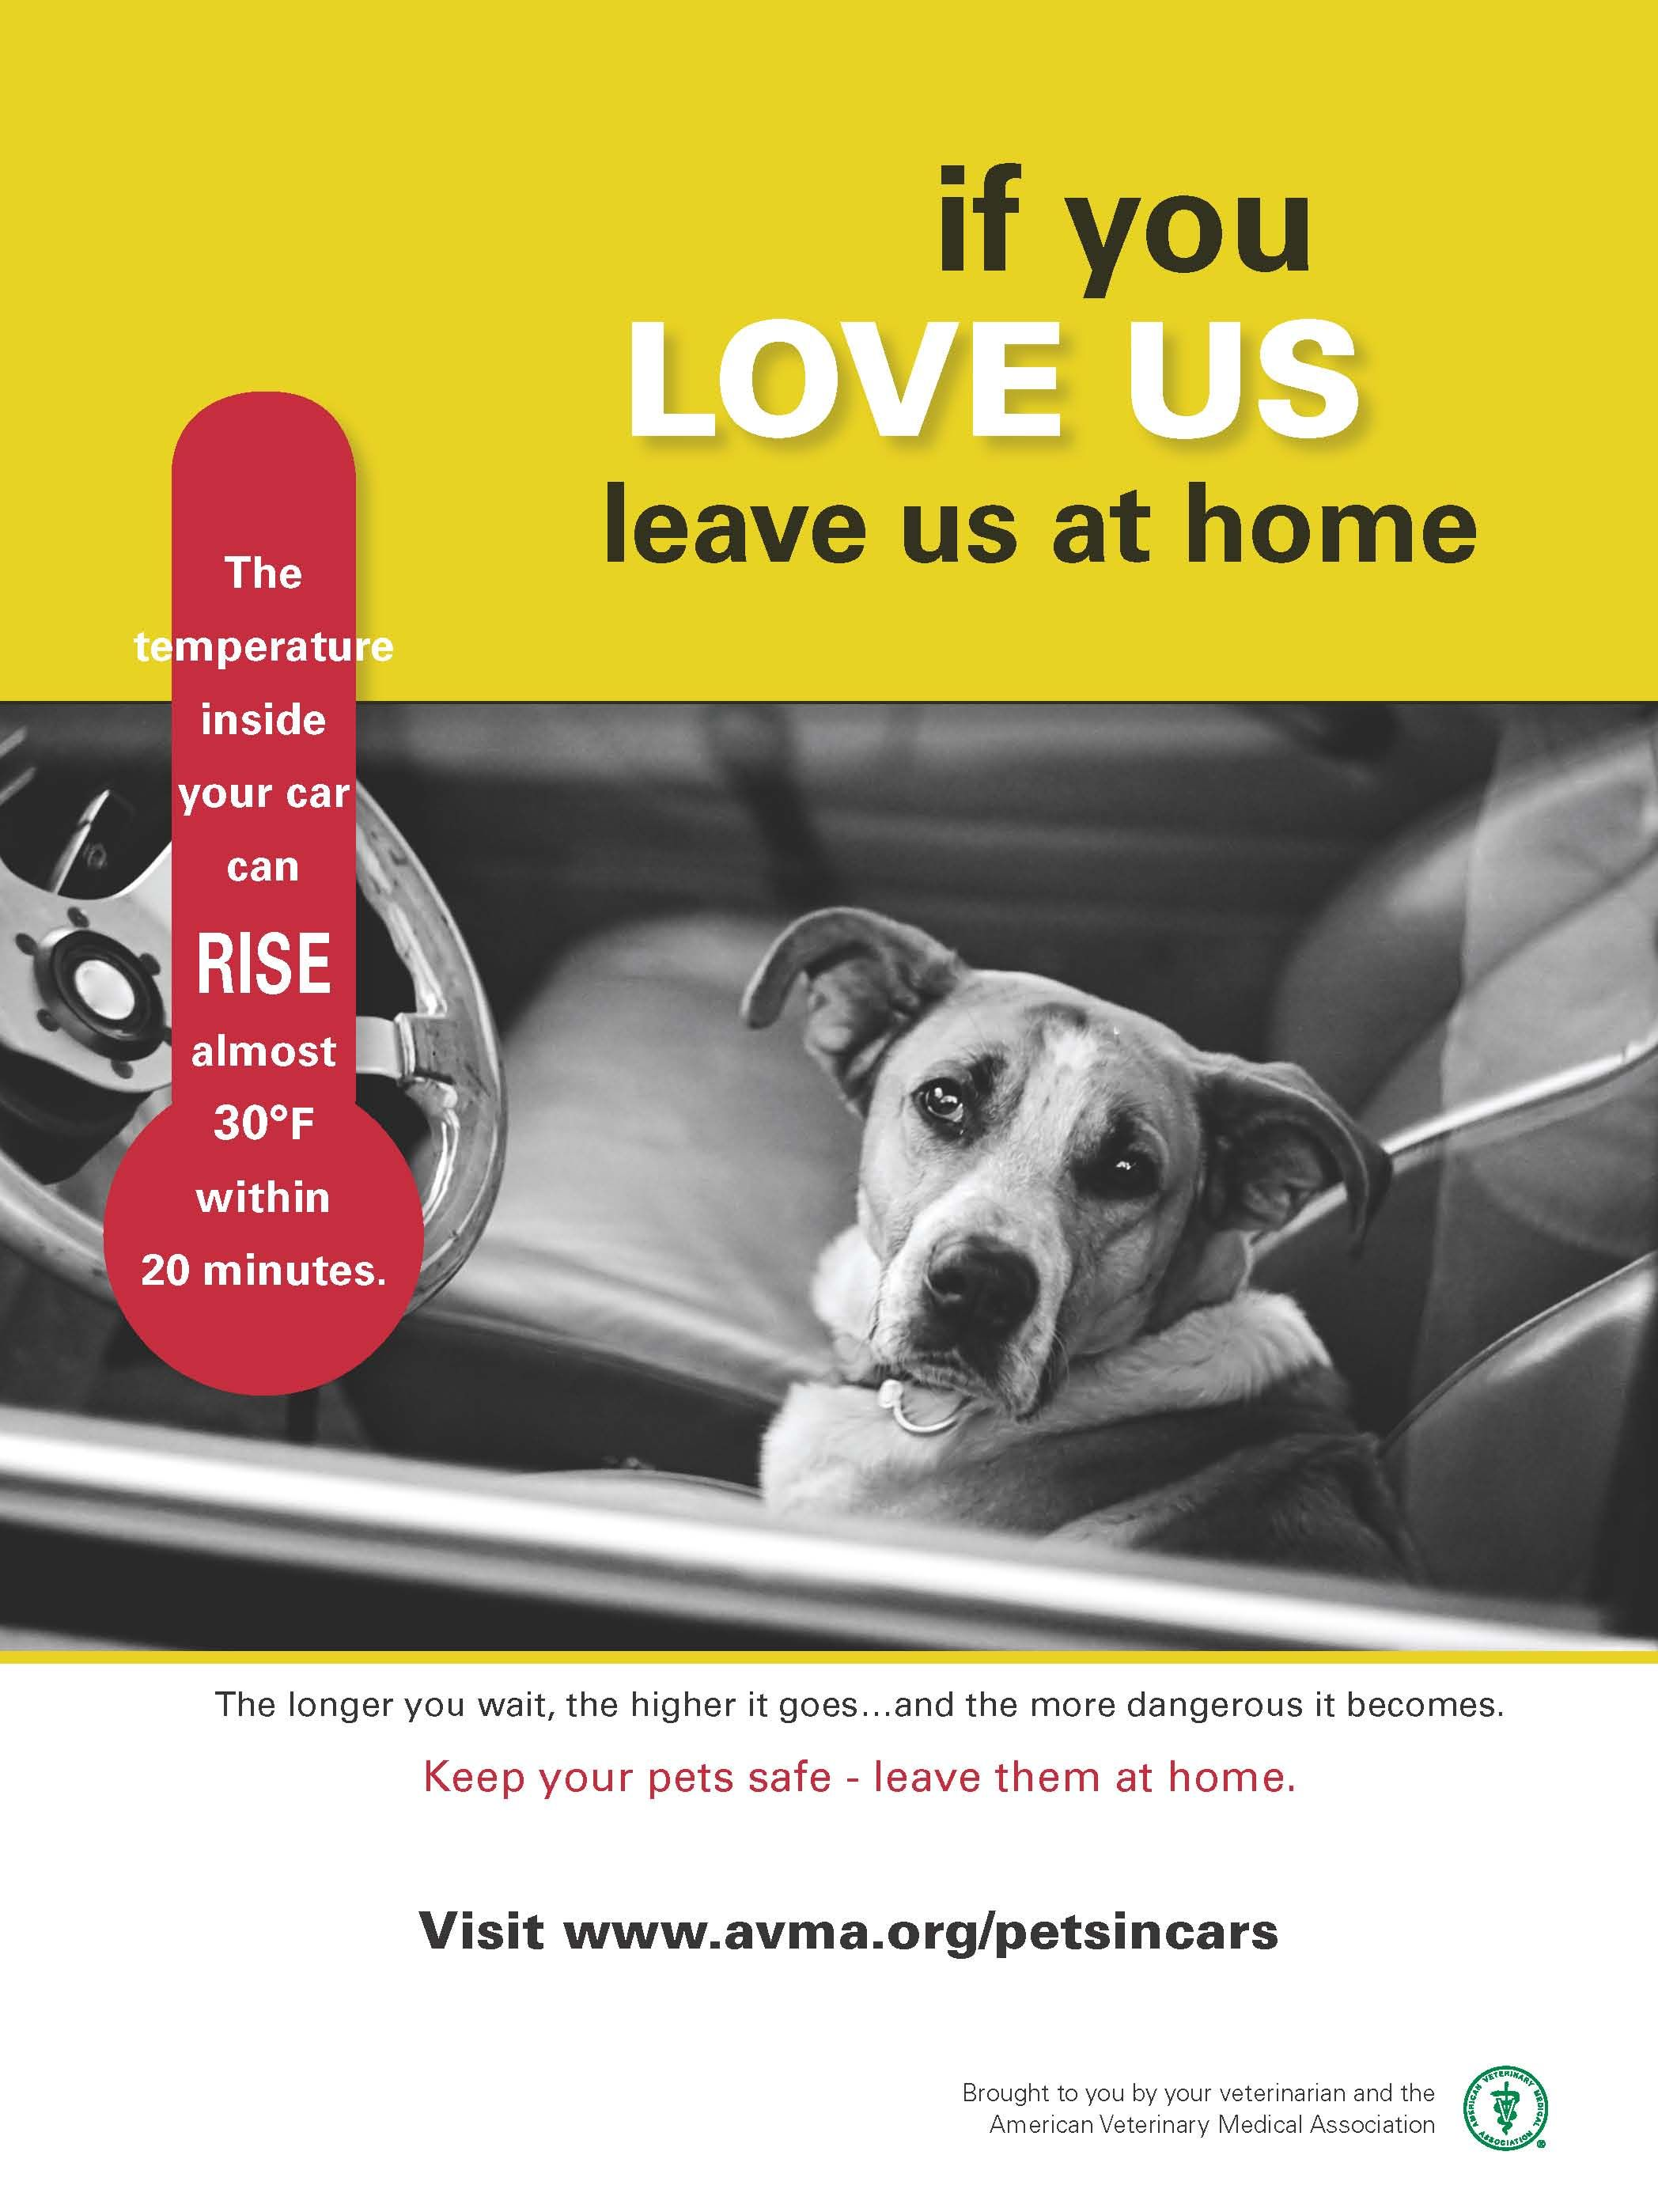 Pets and hot cars don't mix. Please leave your pets at